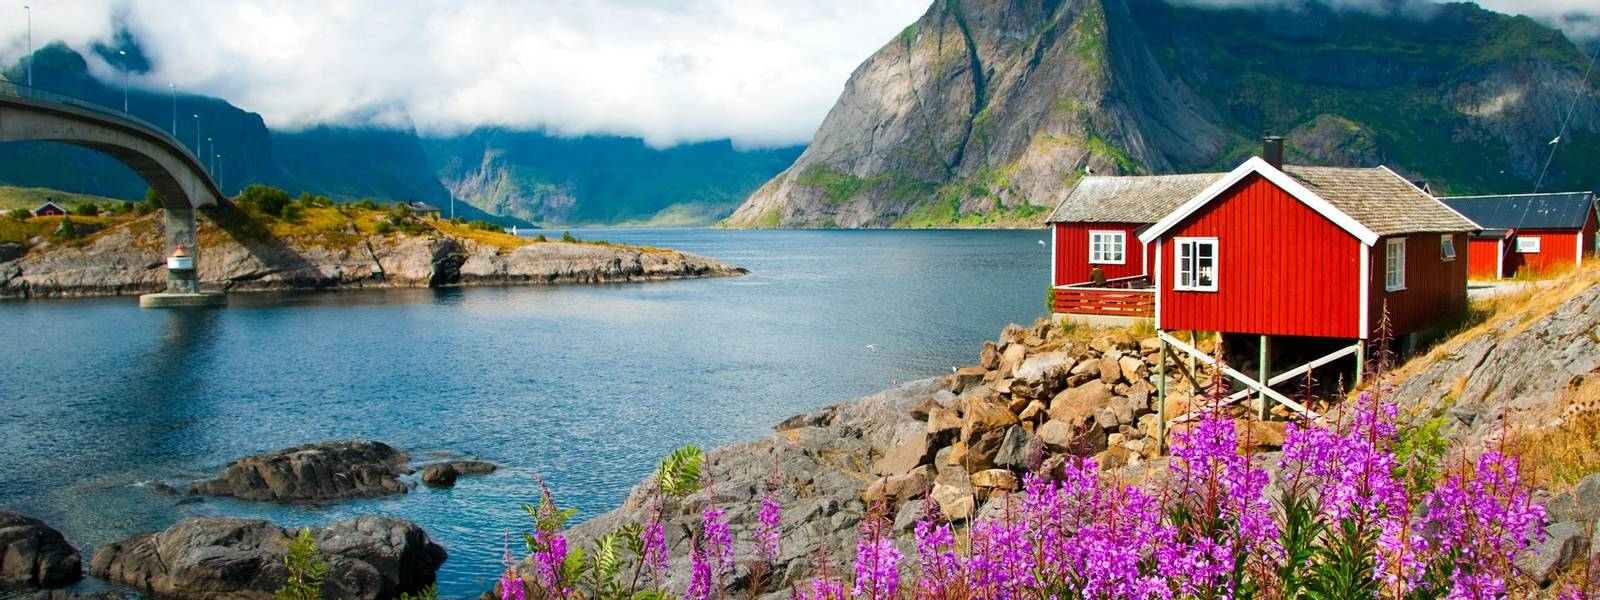 Norway-LofotenIslands-Svolvaer-AdobeStock_124586418.jpeg